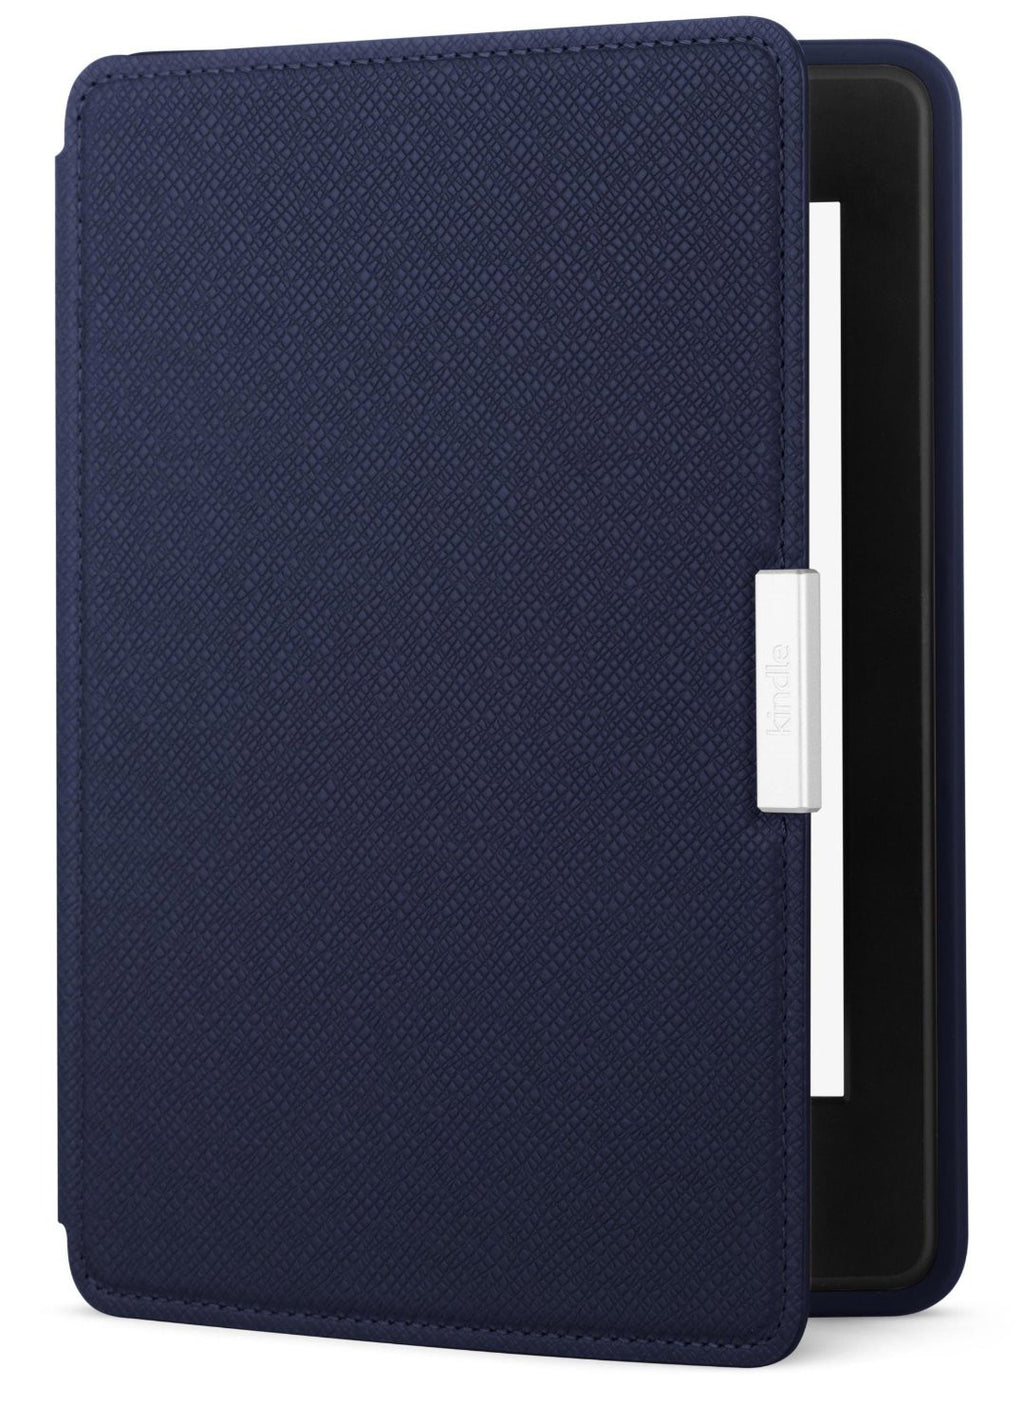 Amazon Kindle Paperwhite Leather Cover, Ink Blue (Previous Generation)